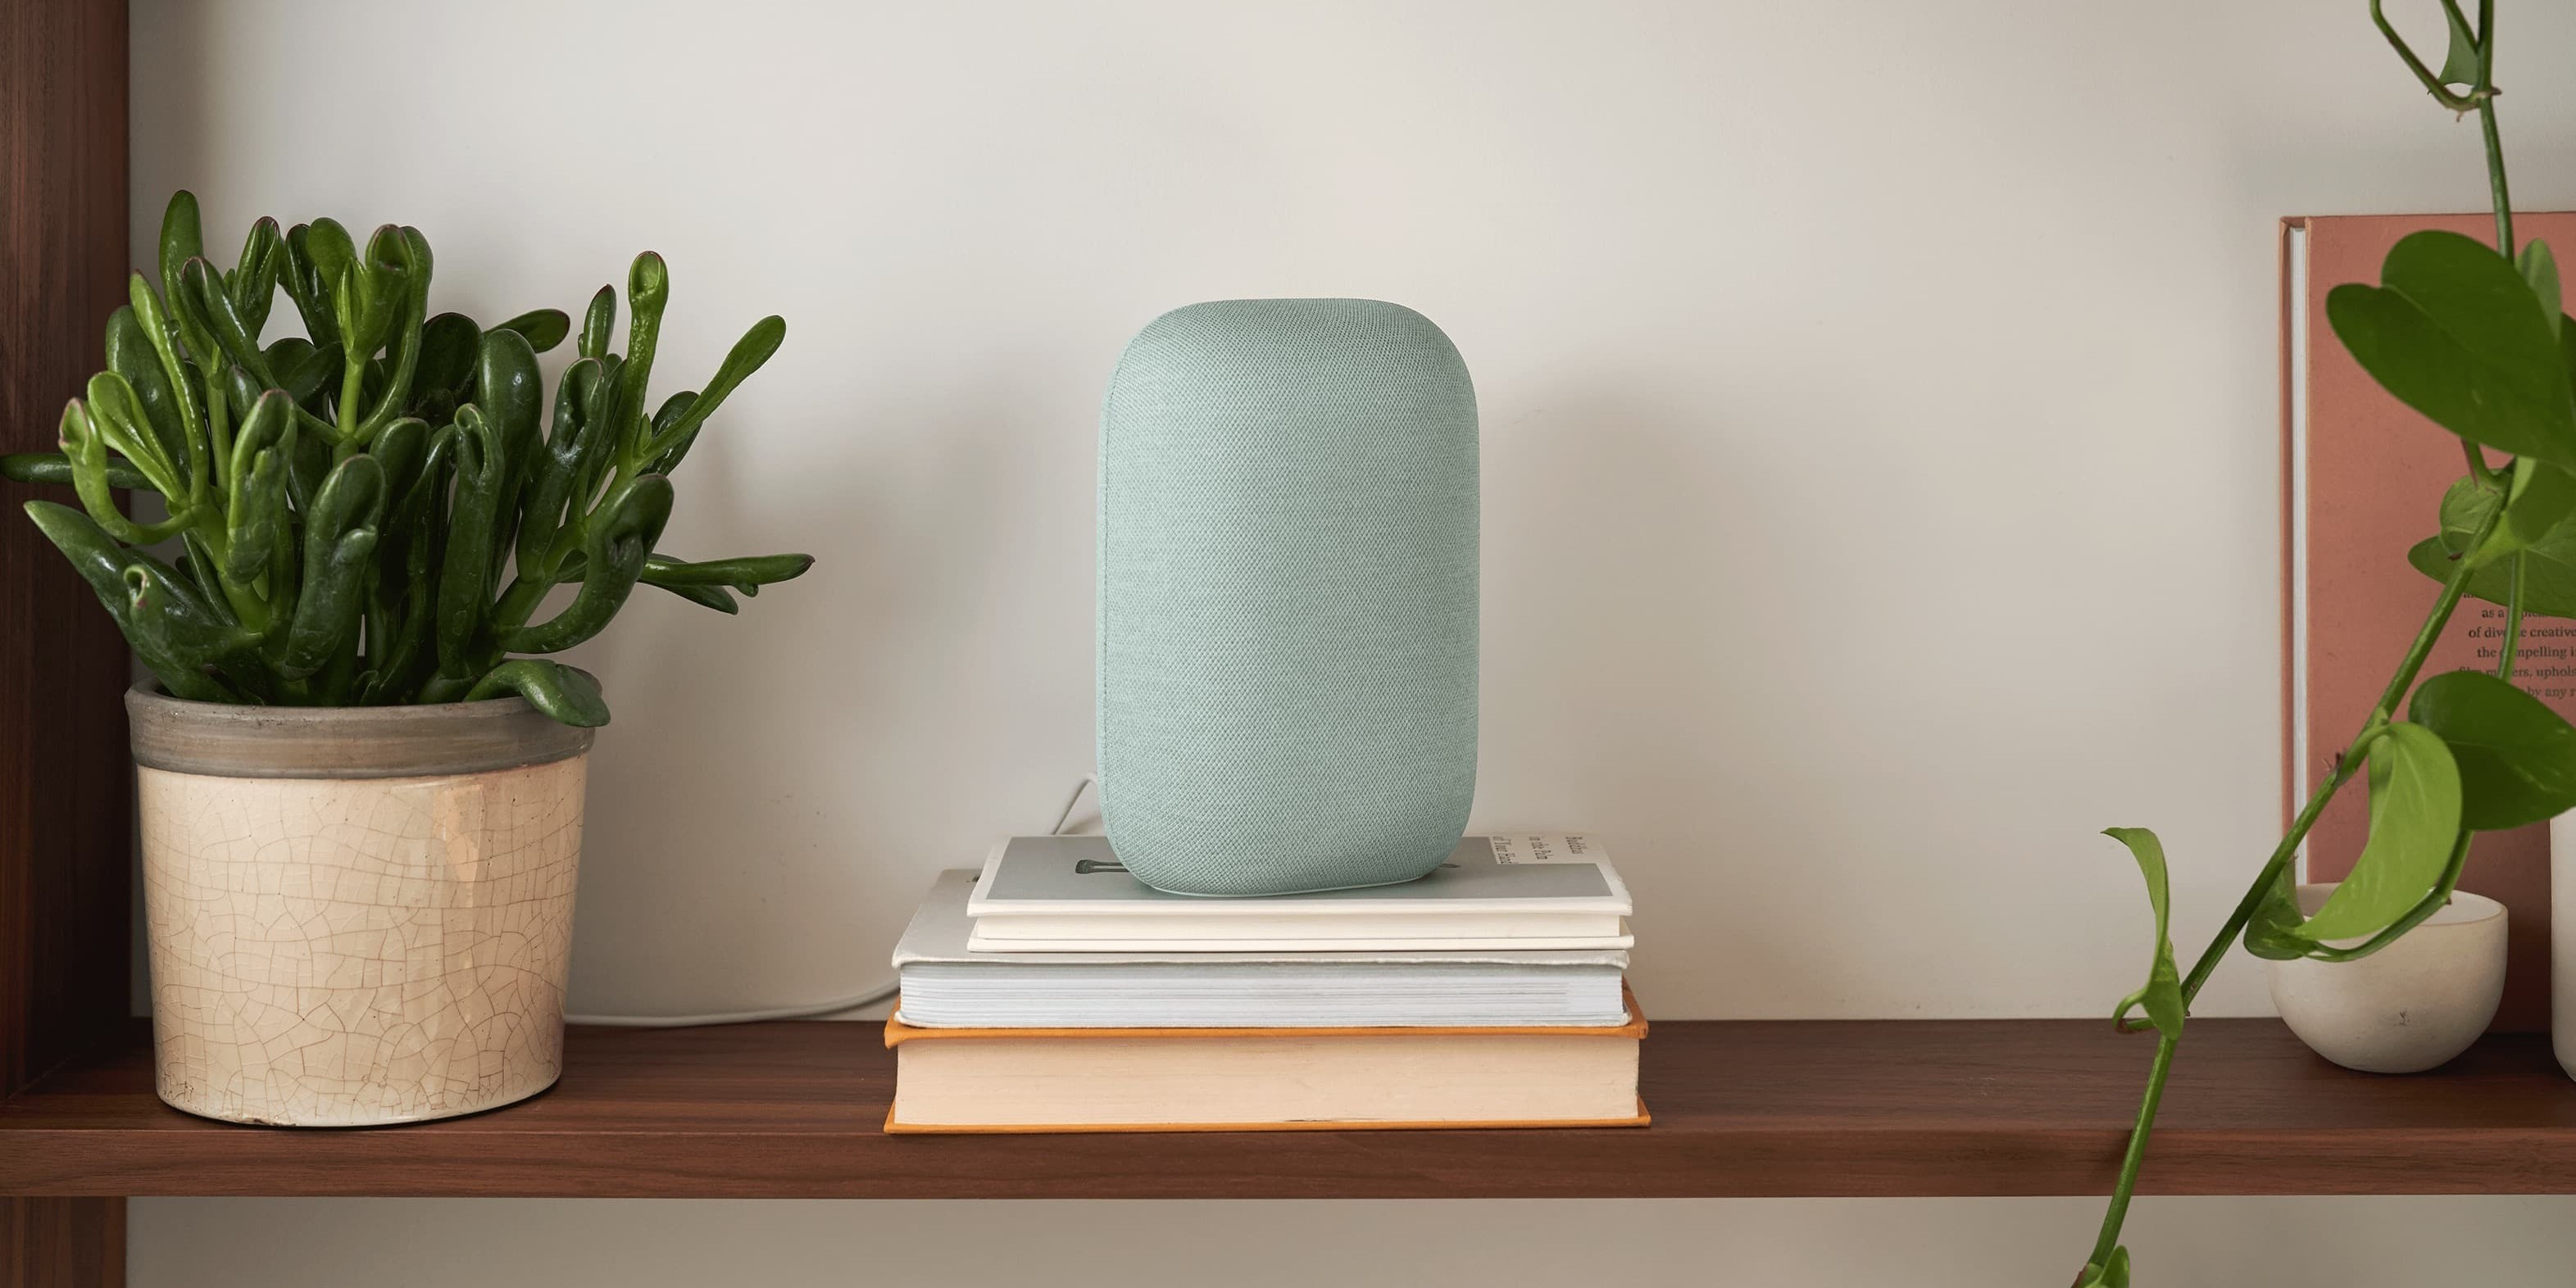 Google launches Nest Audio speaker successor to Google Home available Oct. 5 for $99 – 9to5Google